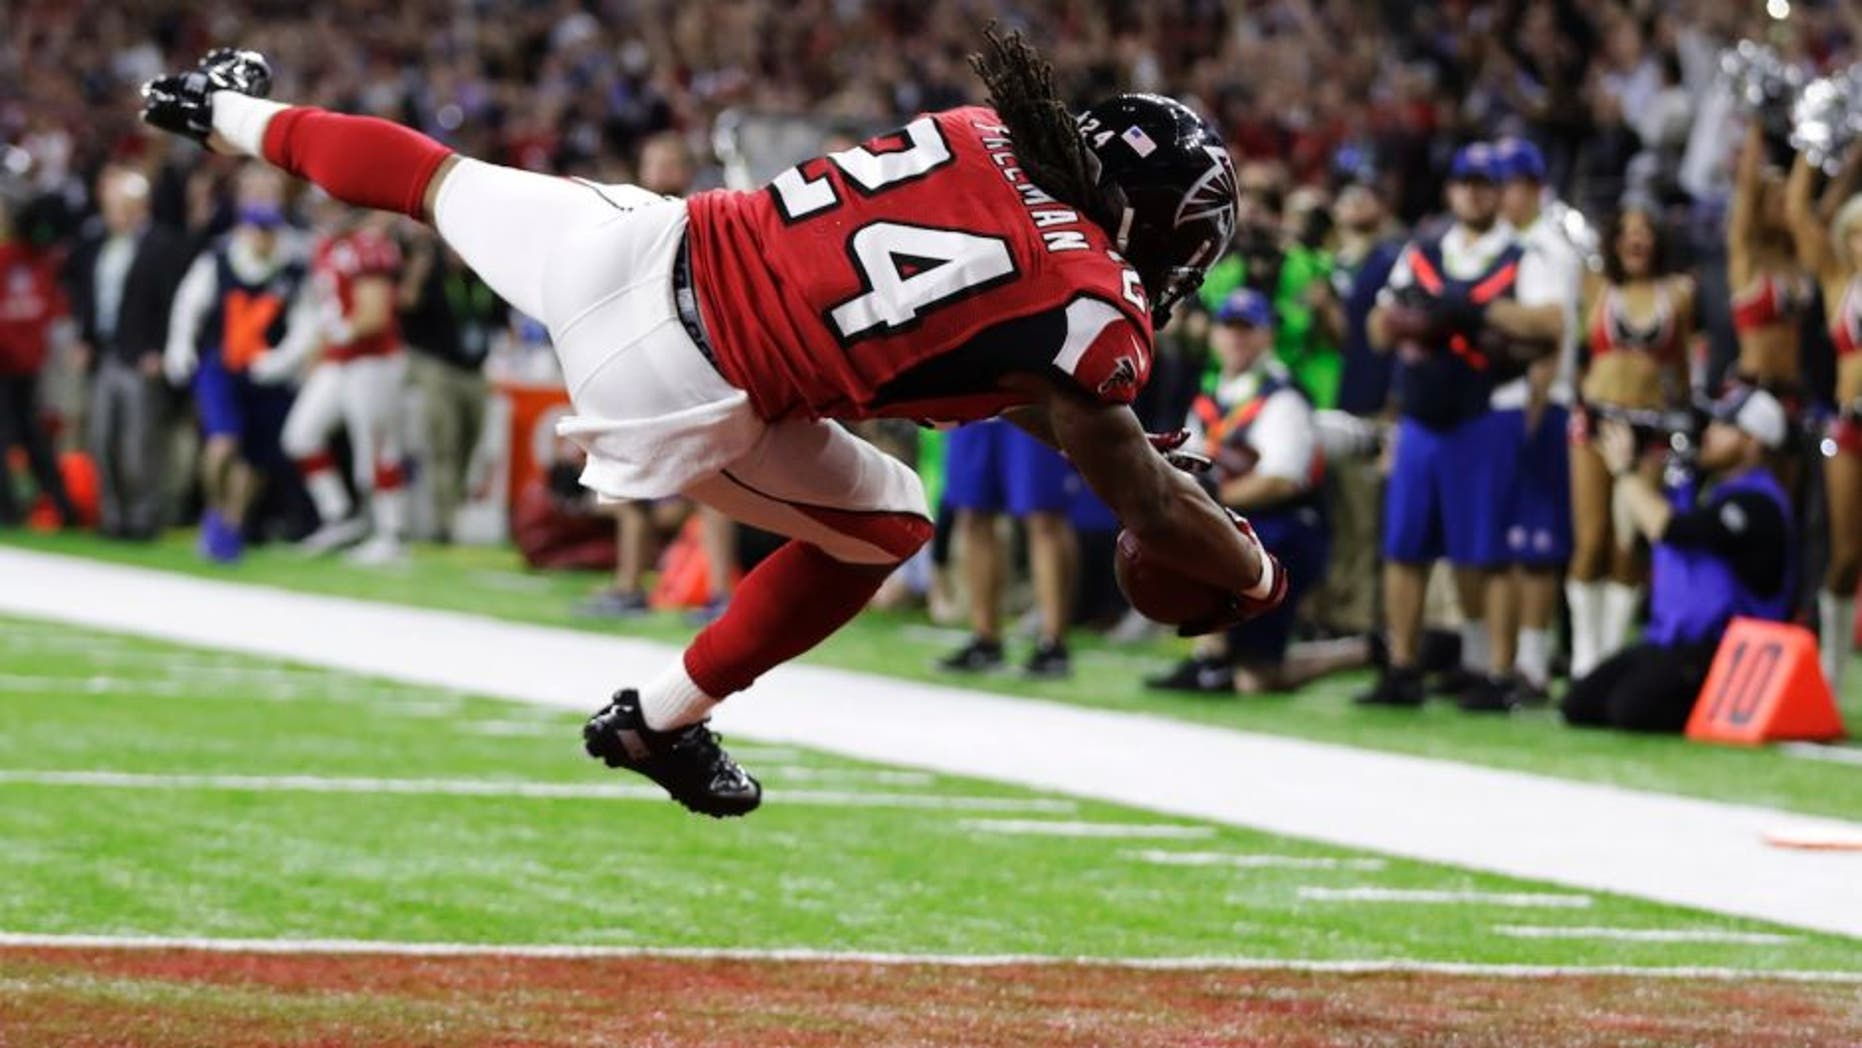 Atlanta Falcons' Devonta Freeman scores a touchdown against the New England Patriots during the first half of the NFL Super Bowl 51 football game Sunday, Feb. 5, 2017, in Houston. (AP Photo/Tony Gutierrez)